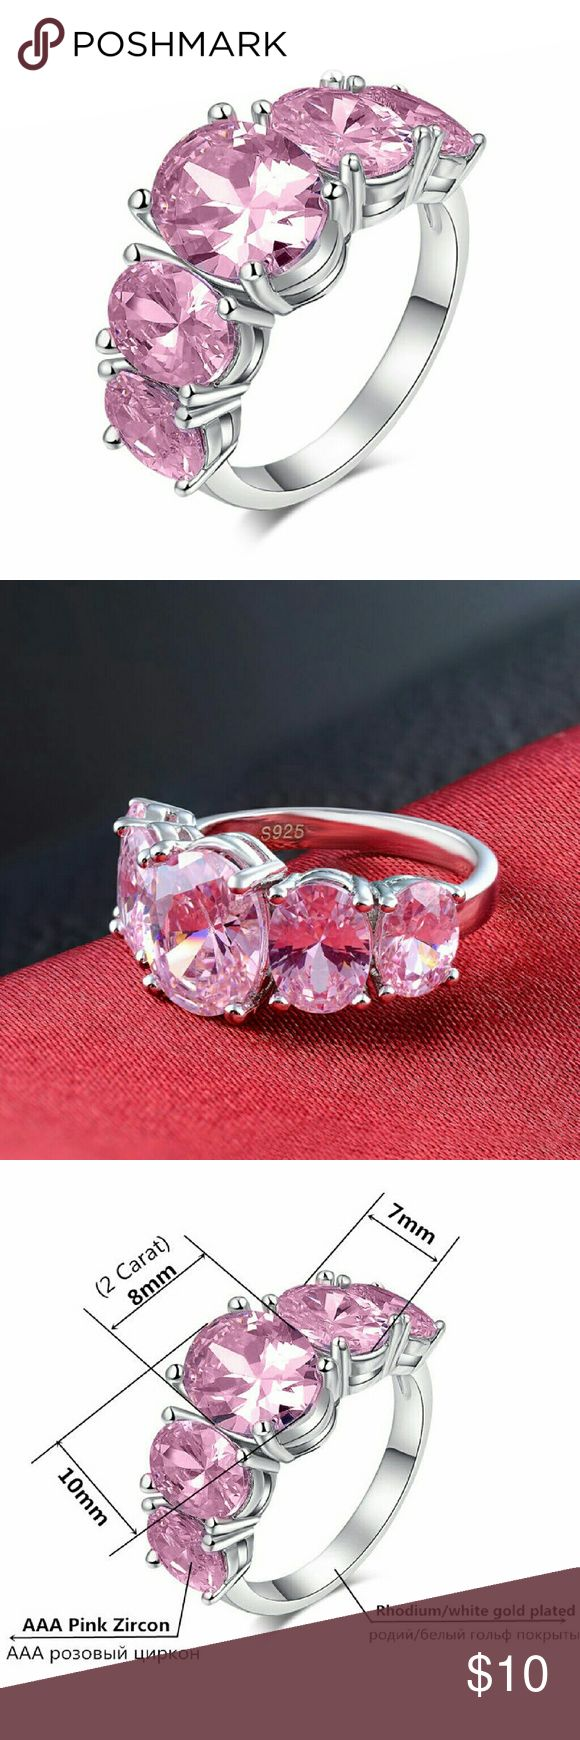 S925 Silver Plate CZ Pink Ruby Fashion Weding Ring Here we have a cubic zirconia Pink Ruby S925 Silver Filled Wedding, Engagement & Anniversary Ring!  Gorgeous fashion, wedding, anniversary or for daily wear or evenings.   Women's ring sizes available: 6, 7, or 8 (Pls comment or msg us for size)  100% brand new, we took out of pack for display photo only.  While they last! Limited quantities available! If sold in our actual store in NYC, this means it is no longer available here as well, we…